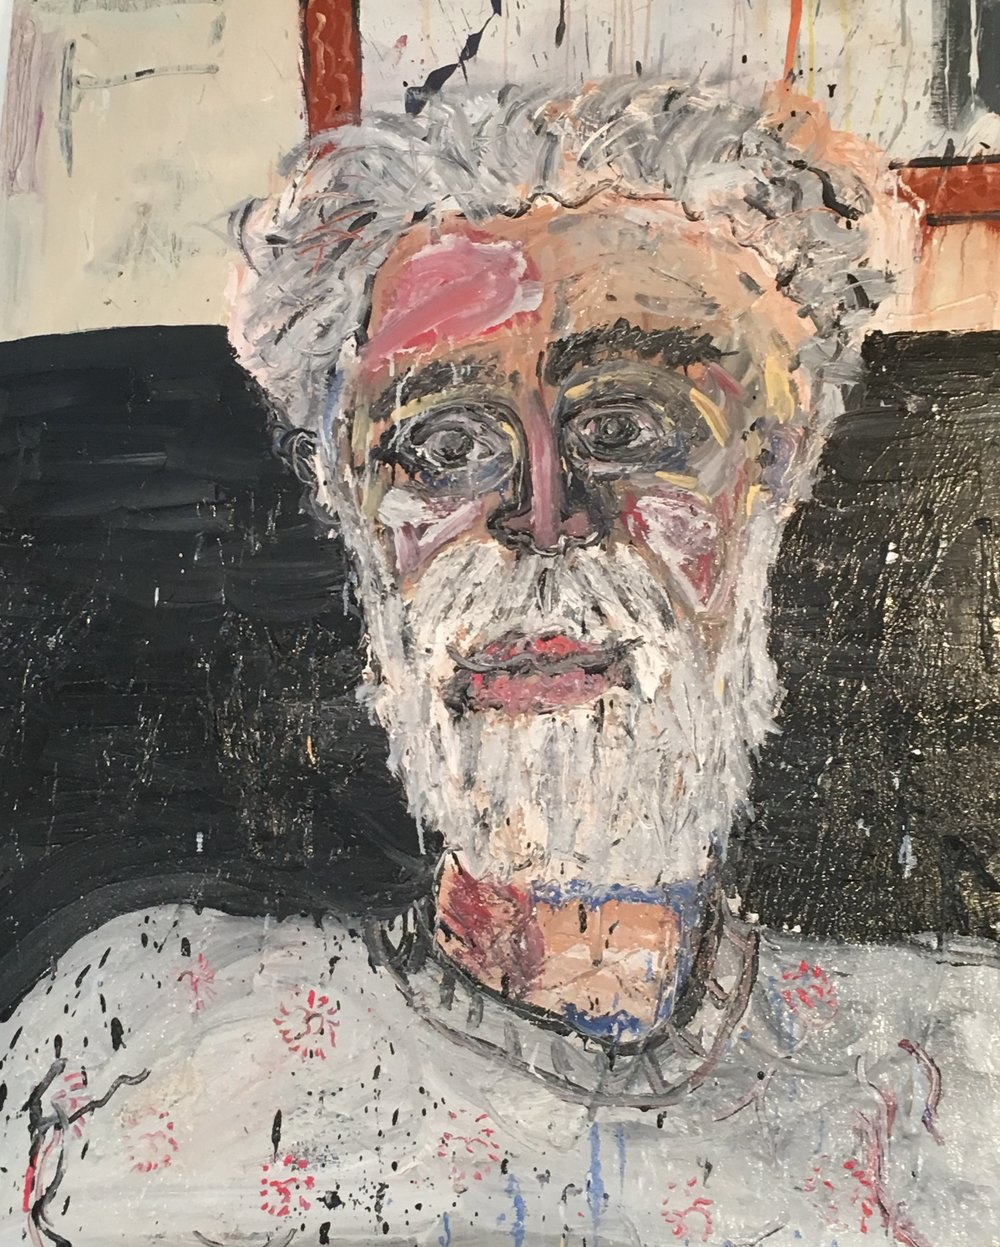 """Painter and Sculptor, Dan Potter, Sitting in My Leather Chair - Oil on canvas60"""" x 48""""2017"""